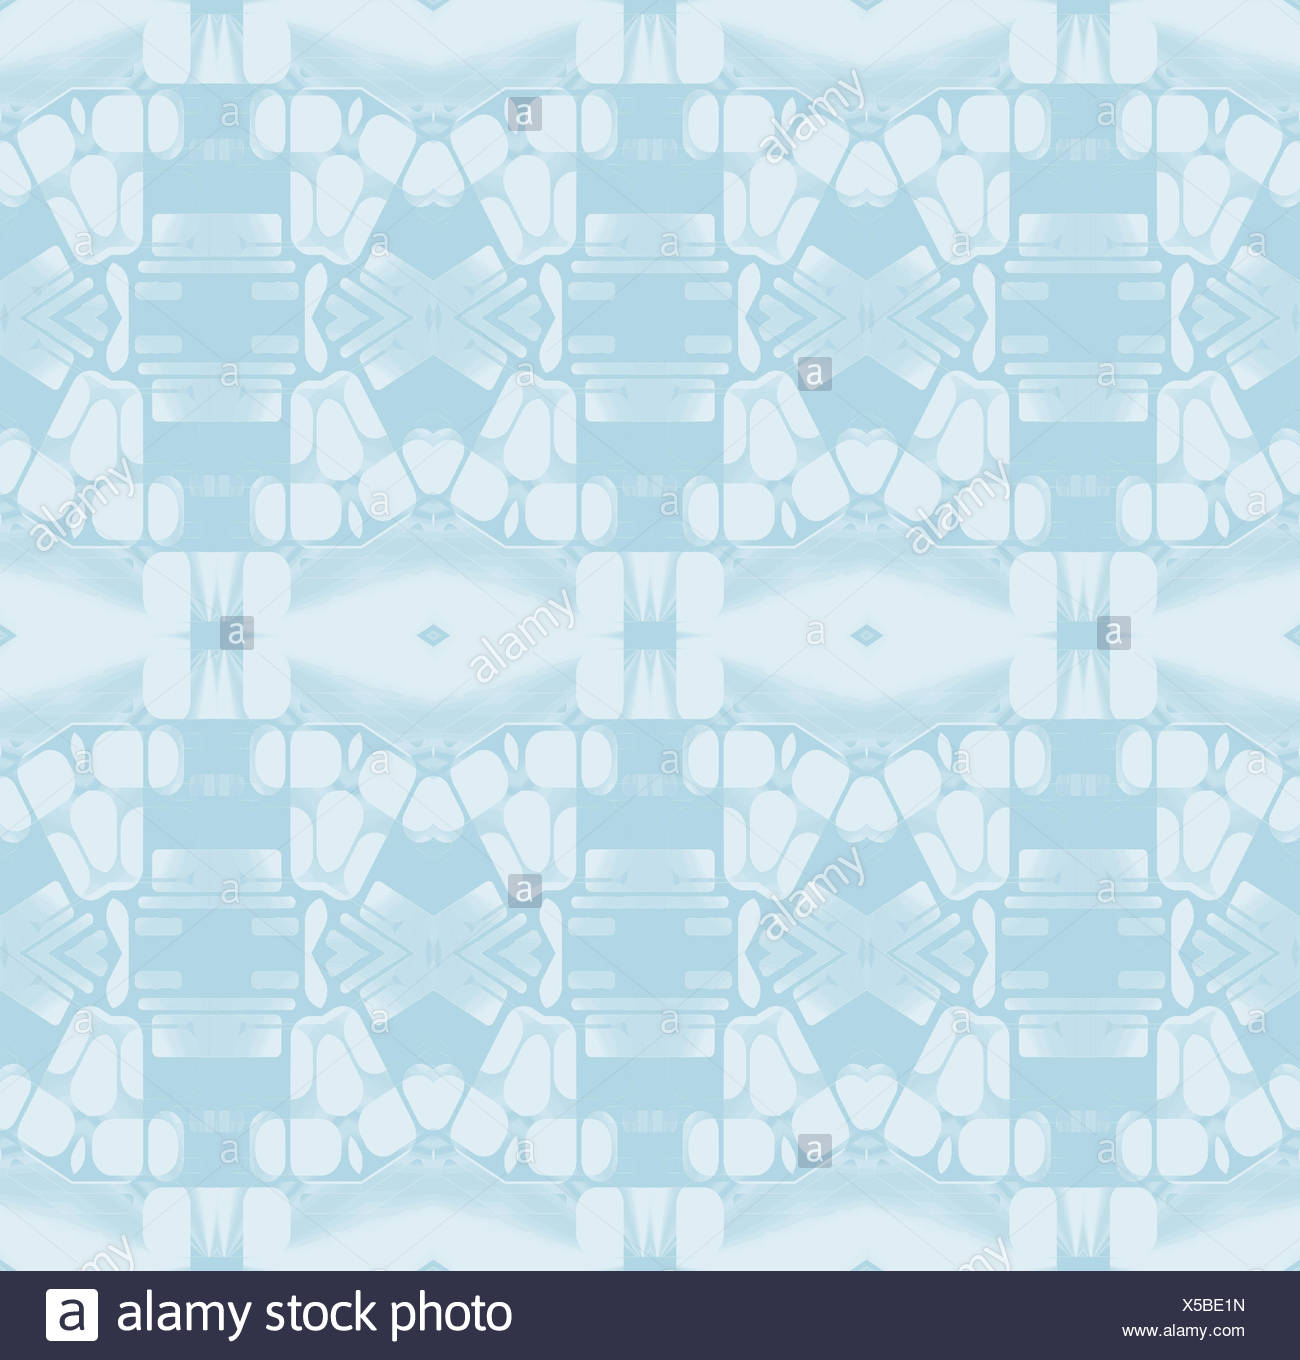 Abstract Geometric Seamless Background Delicate Diamond Pattern In White Light Gray And Blue Gray Shades Quiet Colors Stock Photo Alamy